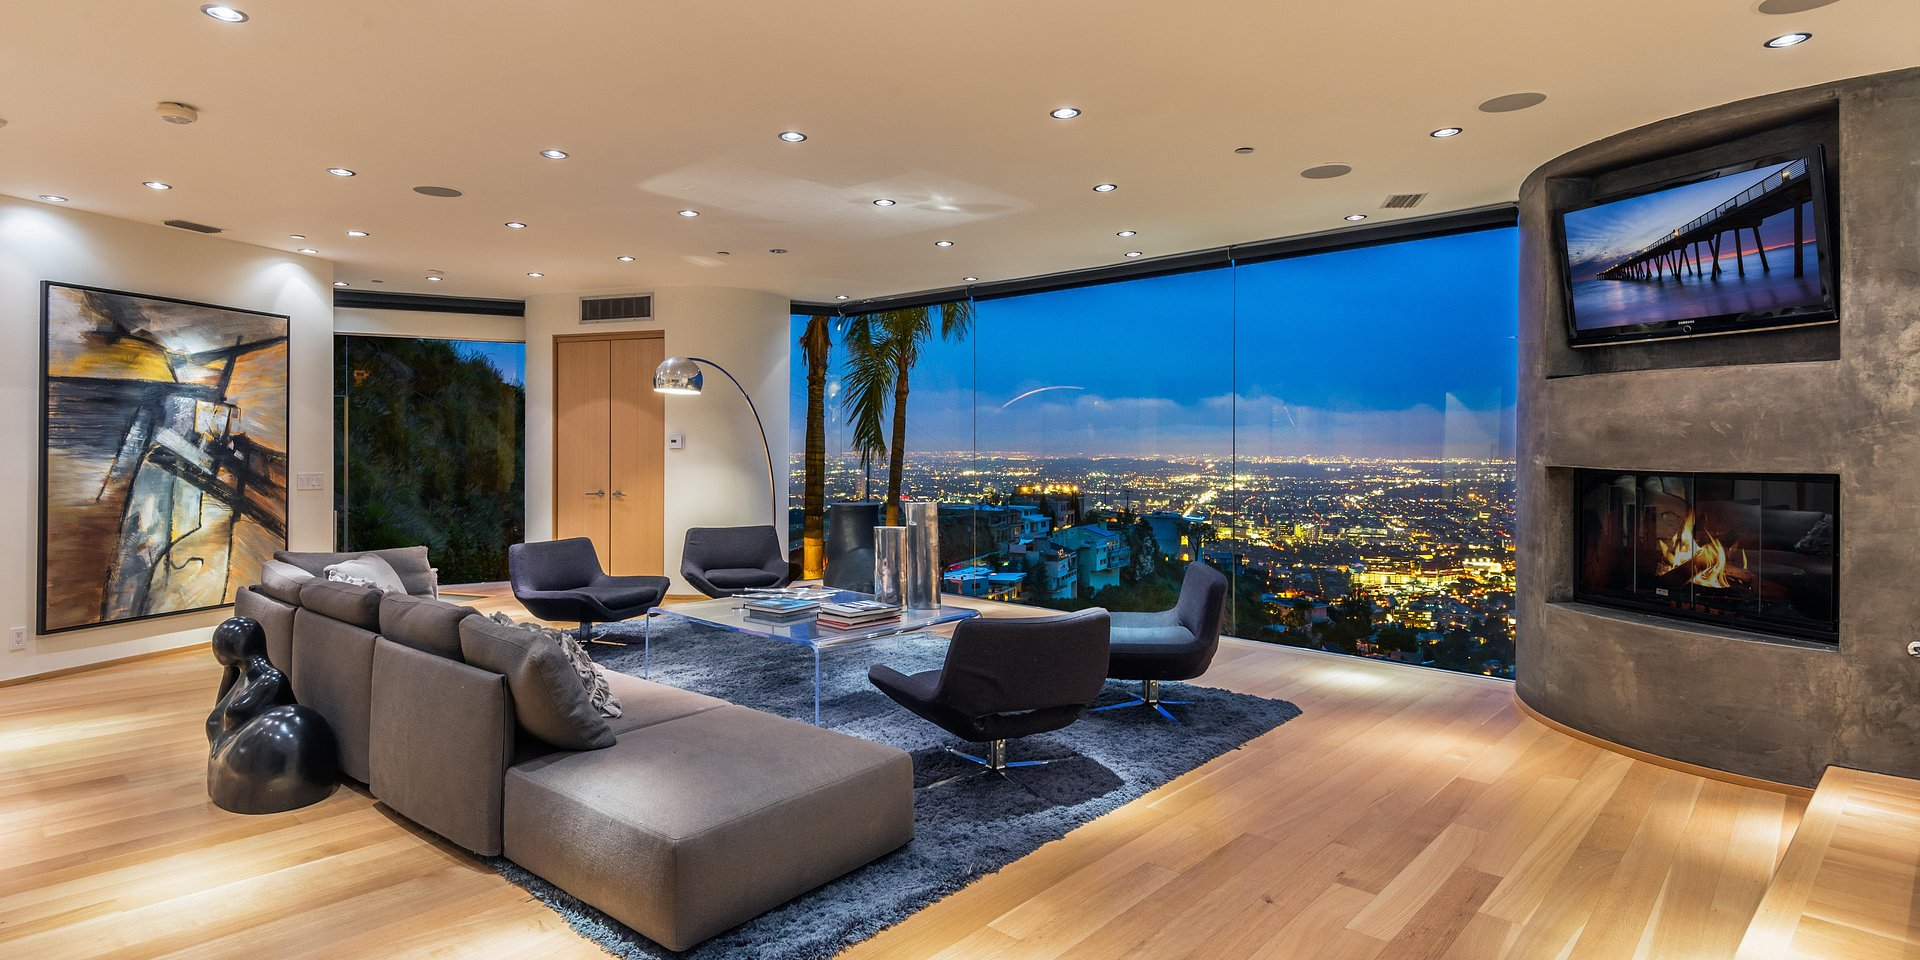 Coldwell Banker Residential Brokerage Lists Los Angeles Property for $6.975 Million